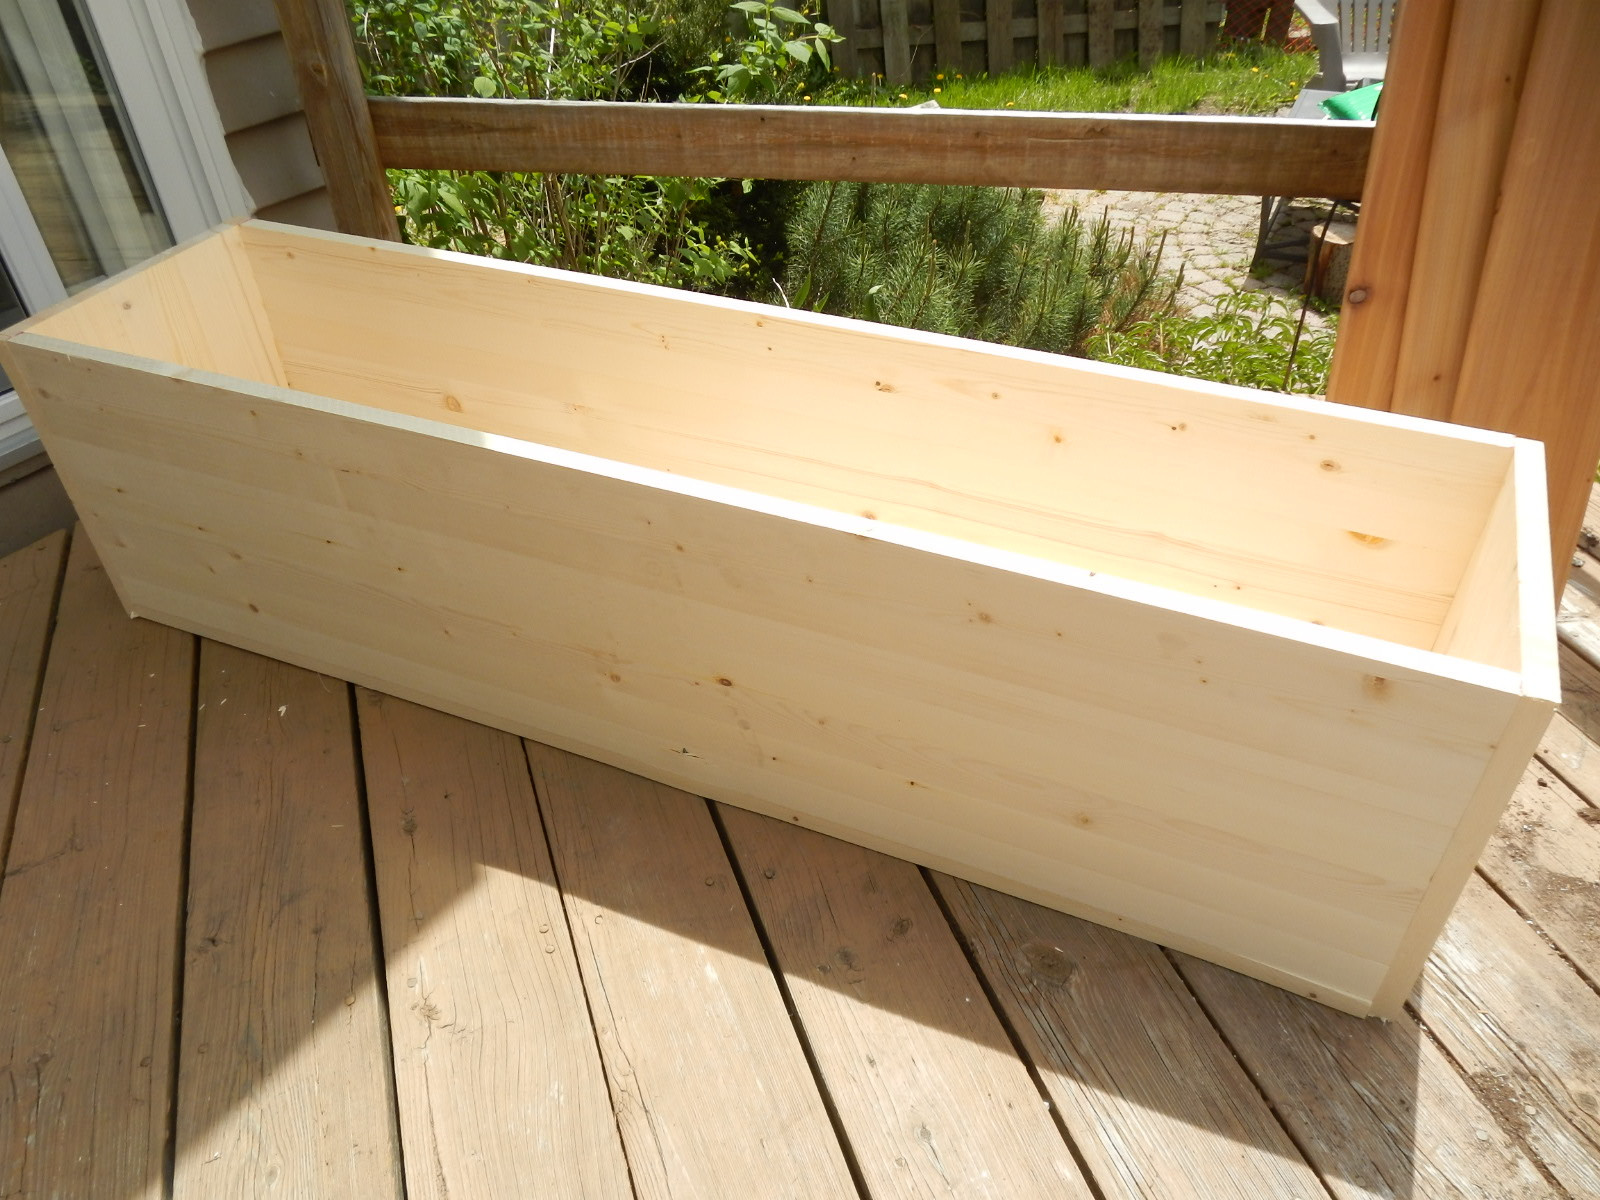 Best ideas about DIY Wood Planter . Save or Pin Planting for Privacy – DIY Wood Planter Now.